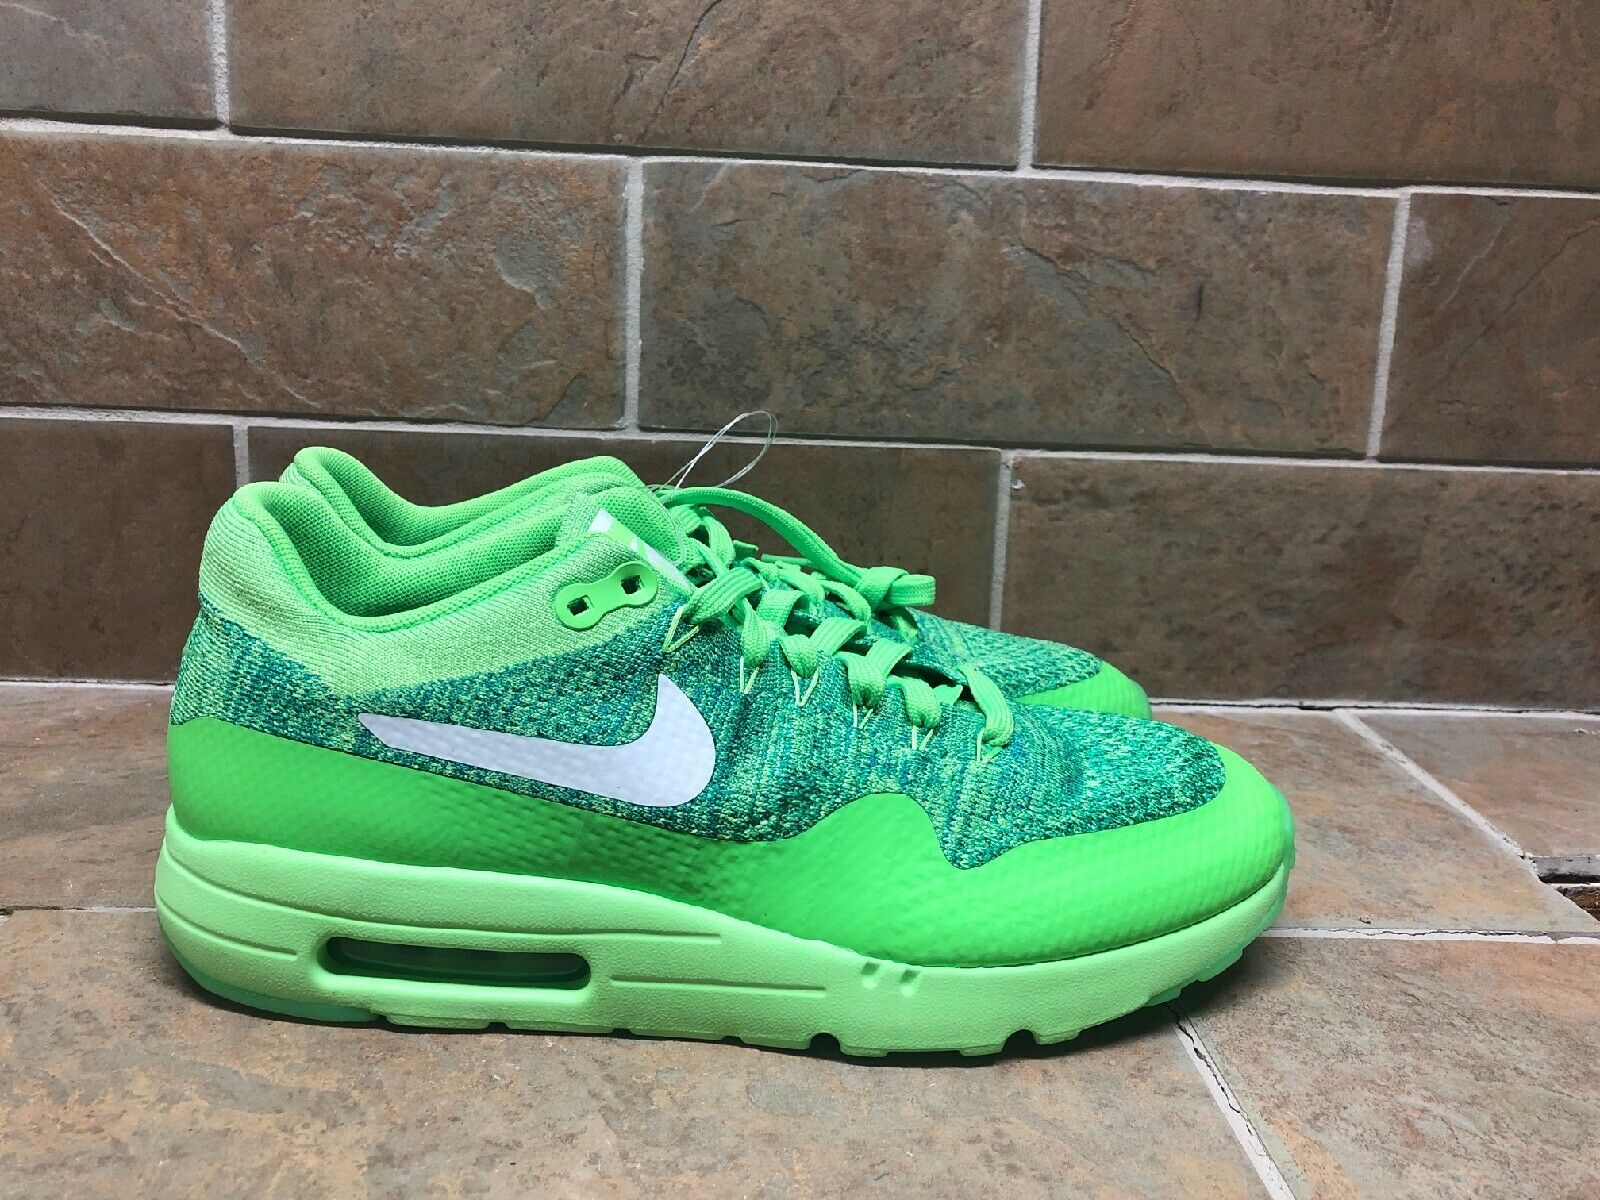 Nike Air Max 1 Ultra Flyknit Shoes Voltage Green White 843384 301 Mens Size 10